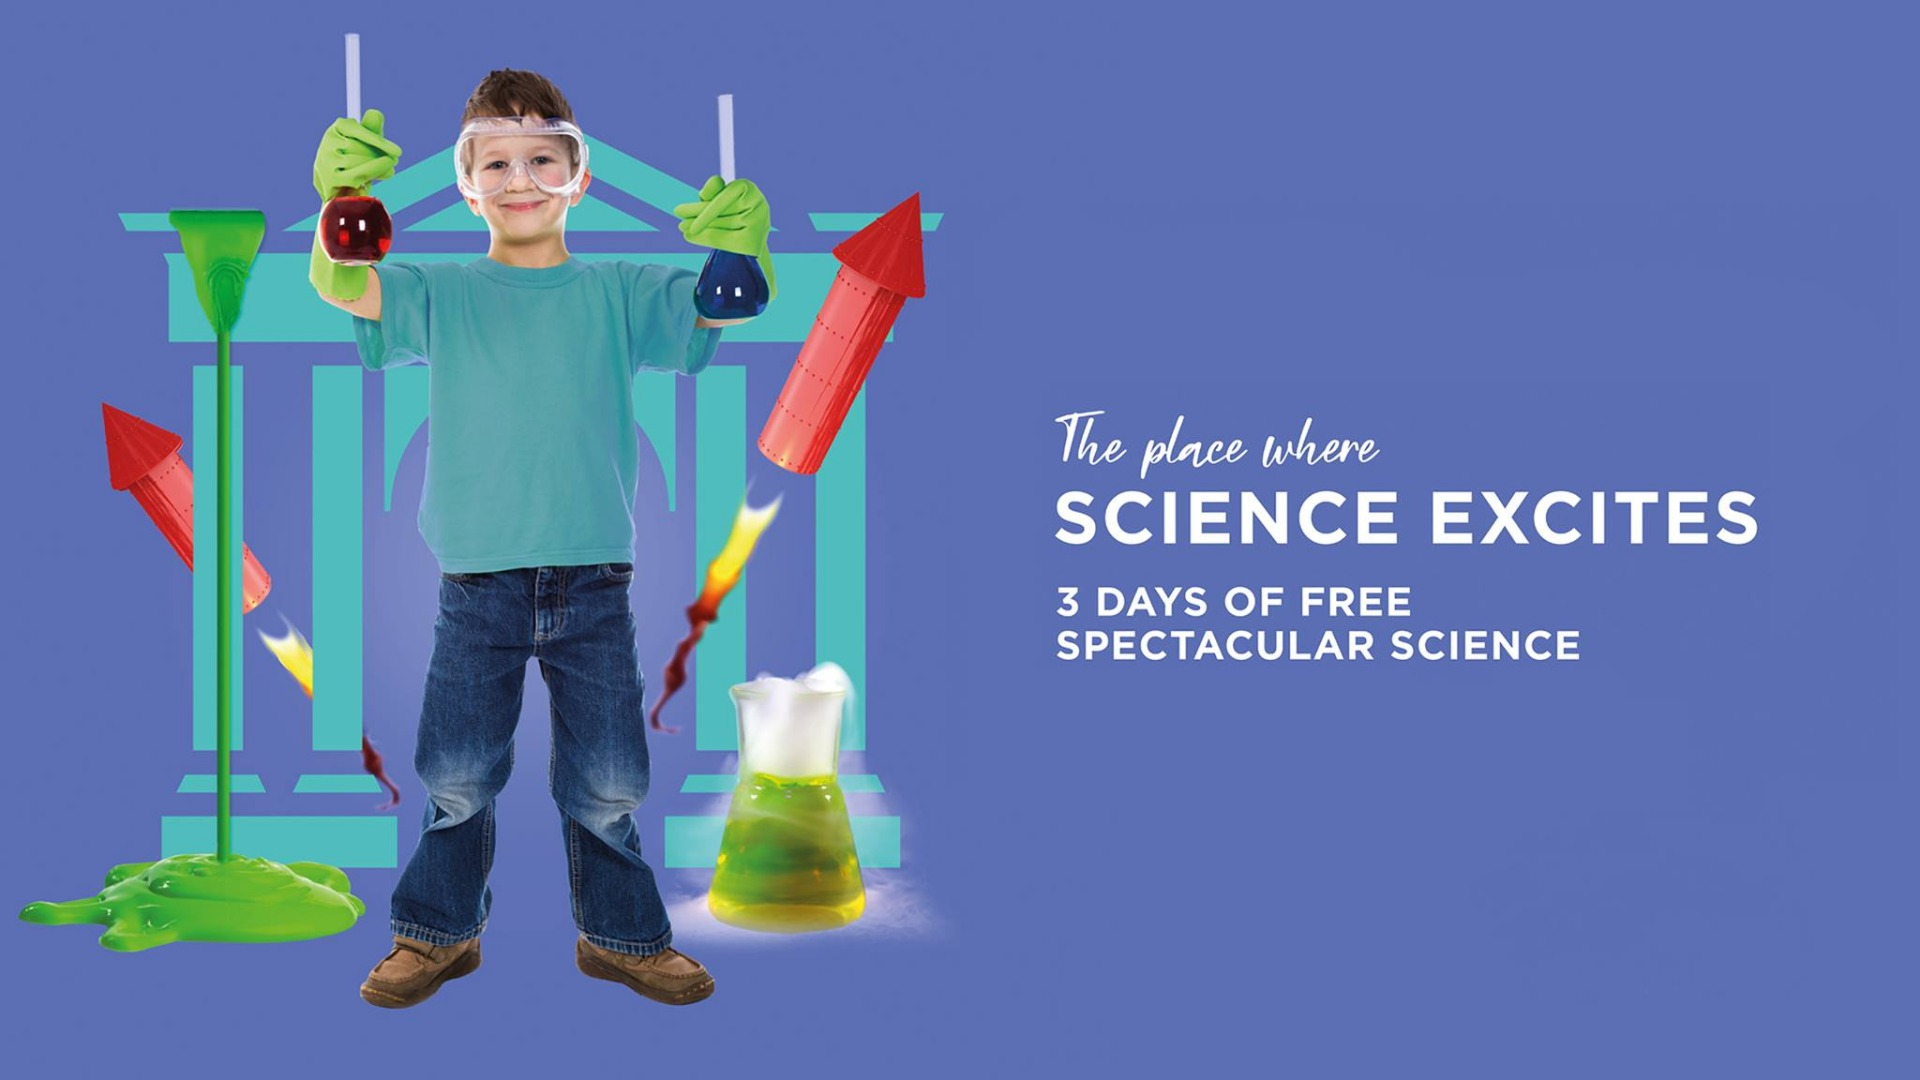 Get excited by science at Market Place